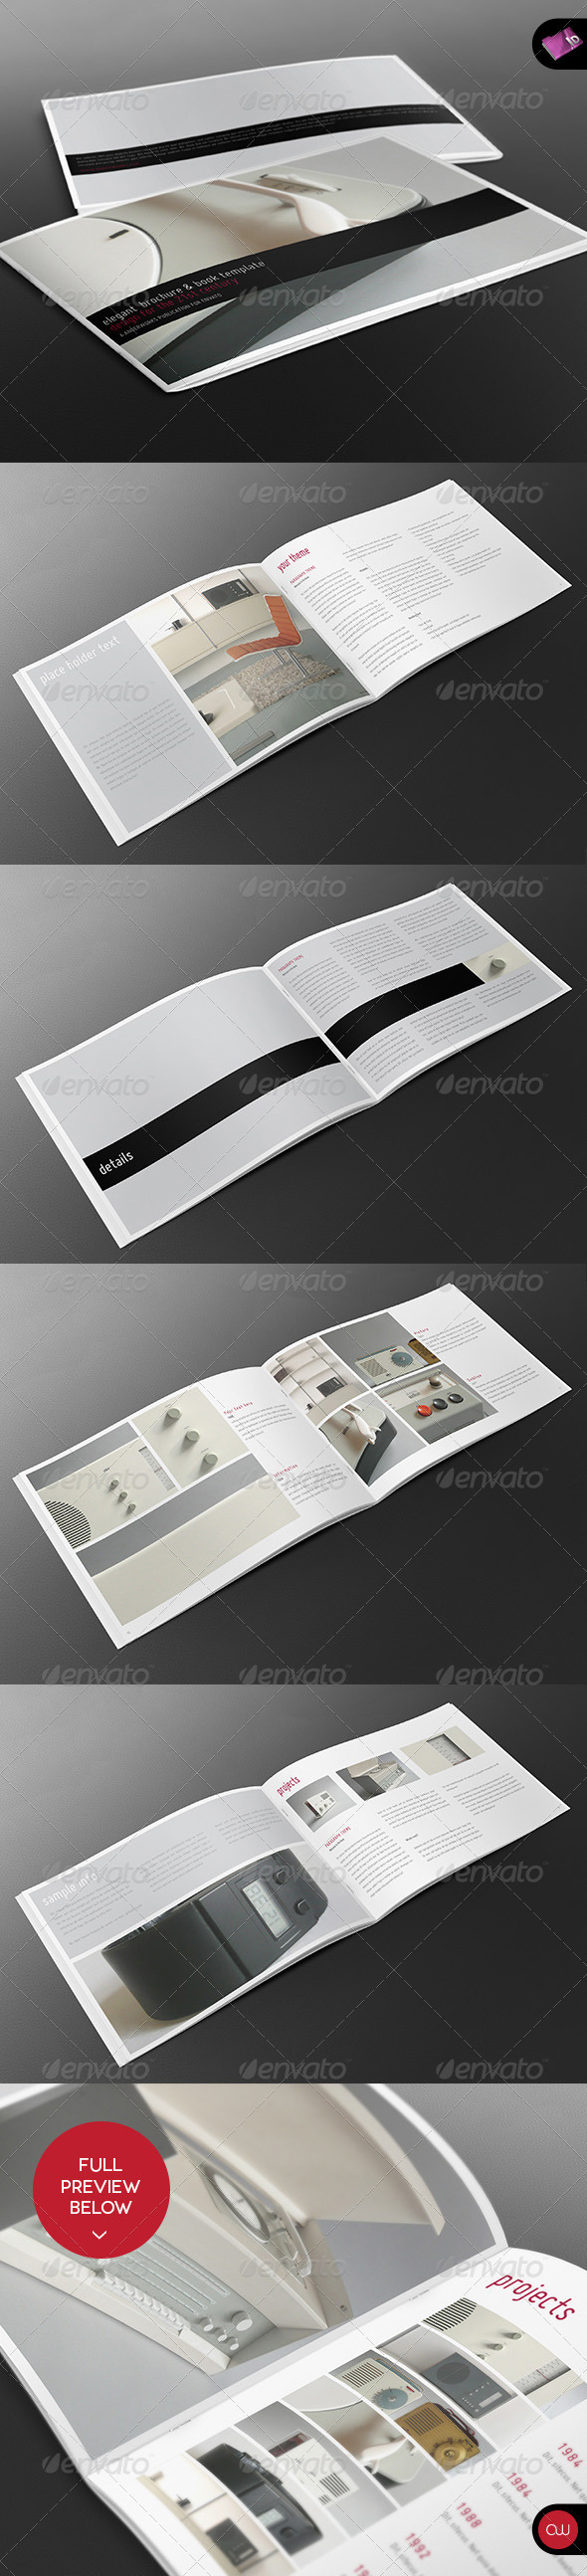 Book &amp; Brochure - Elegant Series Vol.2 - Brochures Print Templates